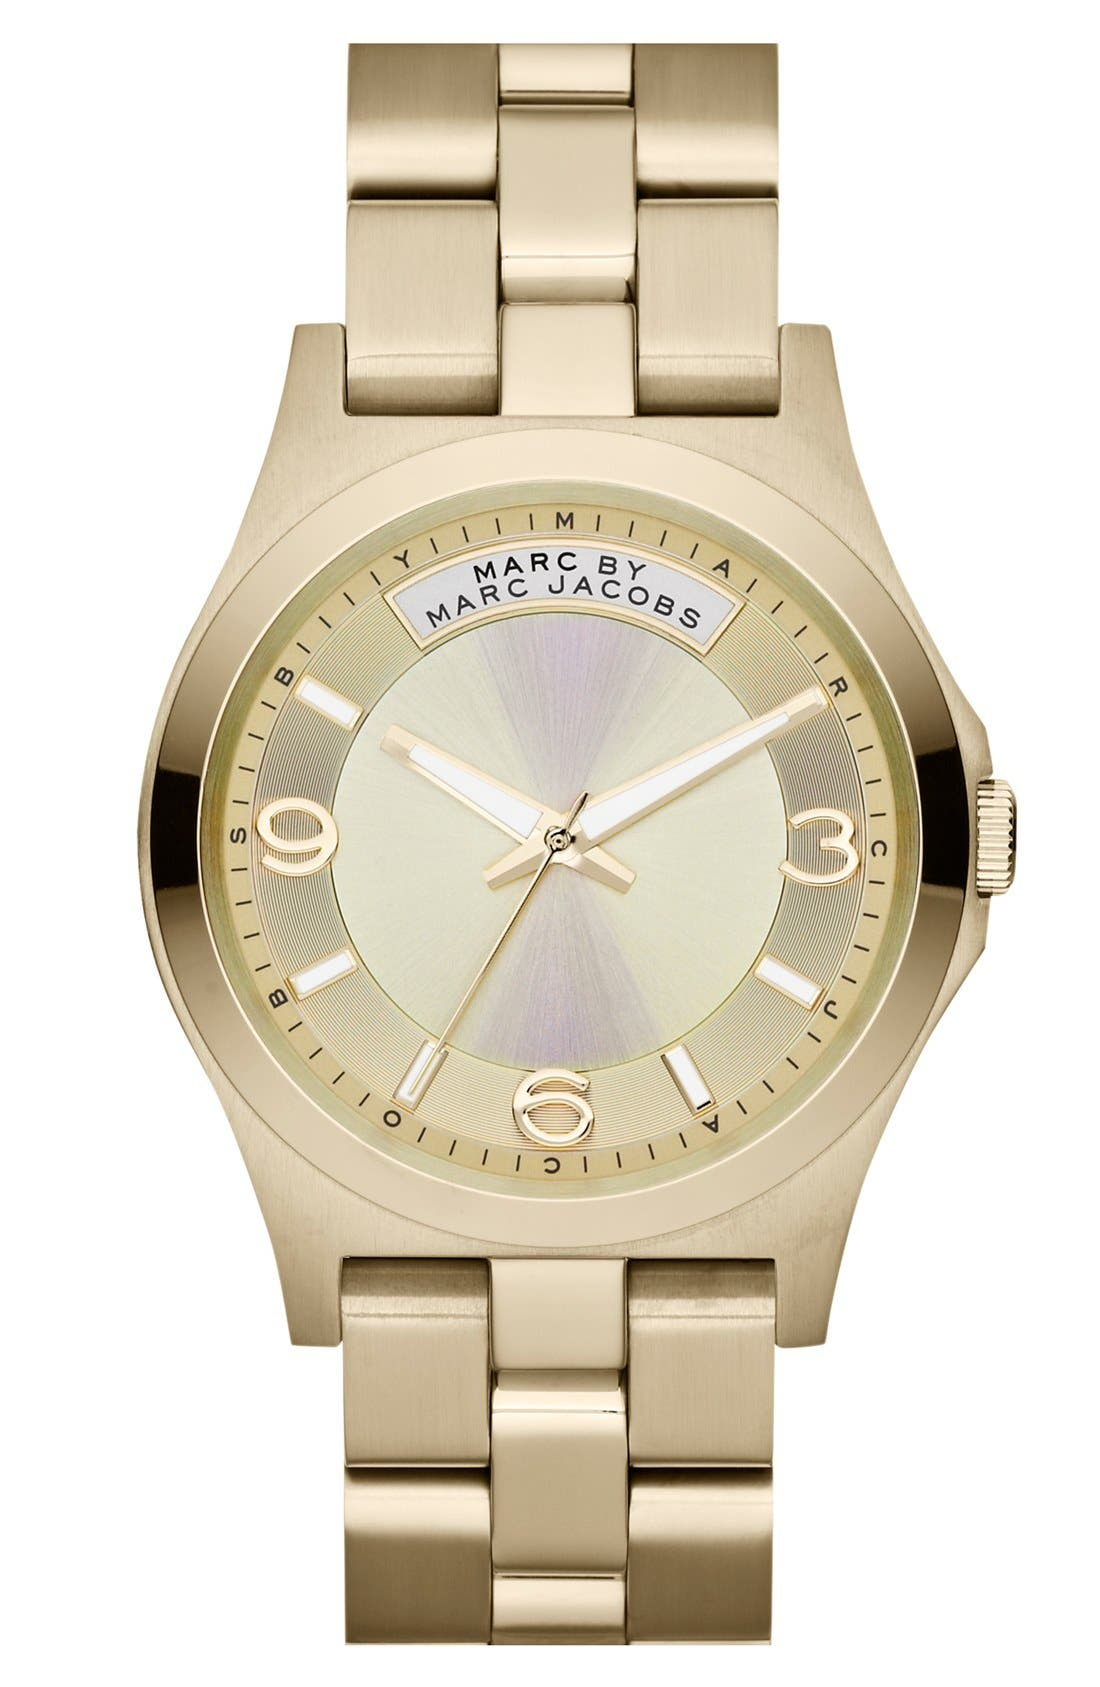 Main Image - MARC JACOBS 'Baby Dave' Bracelet Watch, 40mm